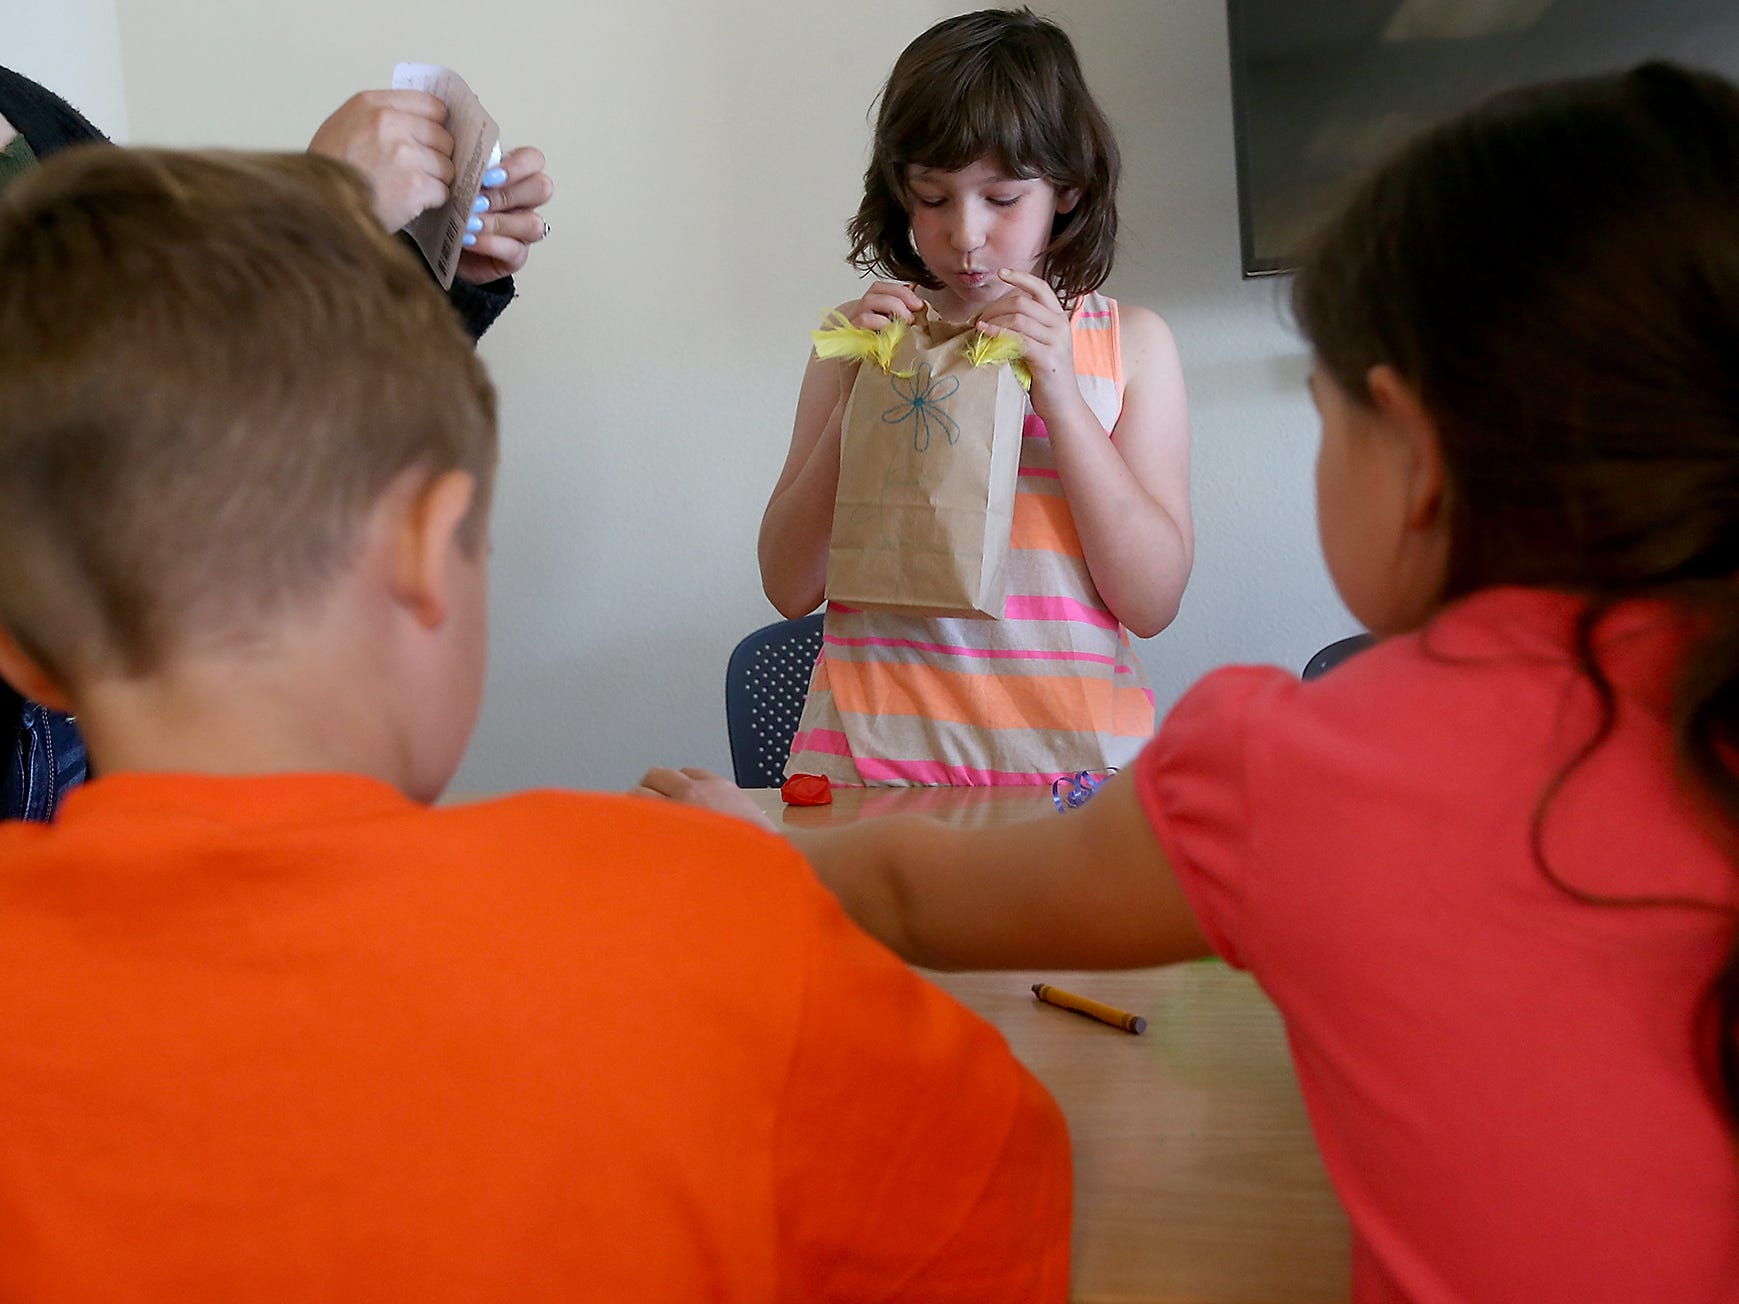 """Sahda Walker, 9, blows into a paper bag to inflate it while making a paper bag lantern with a battery operated candle inside during Ruth Carlson's Spanish Immersion """"Story Time"""" at the Port Orchard Library on Monday, July 23, 2018."""